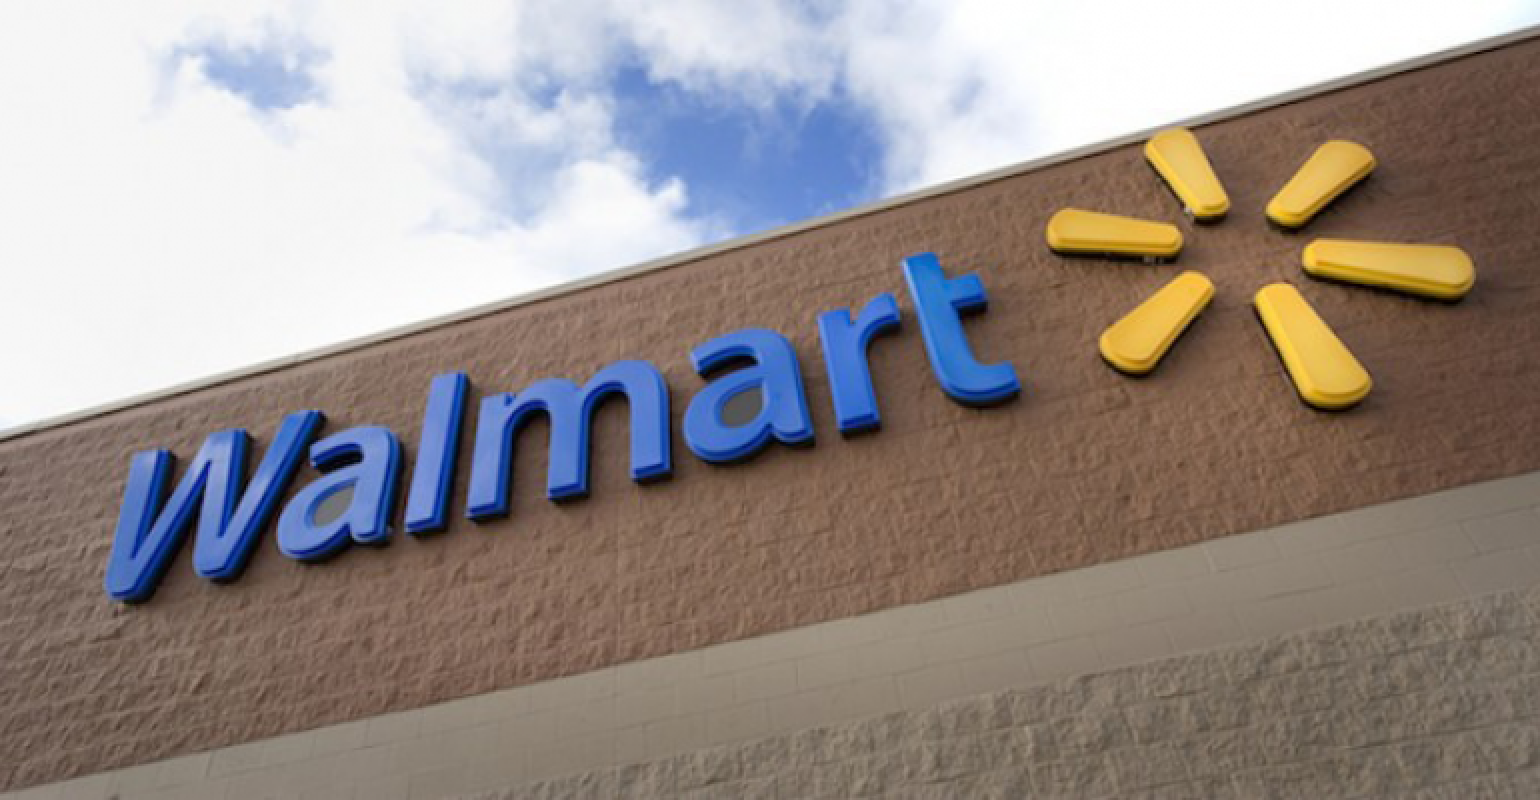 Walmart U.S. marketing chief Barbara Messing steps down after a year.